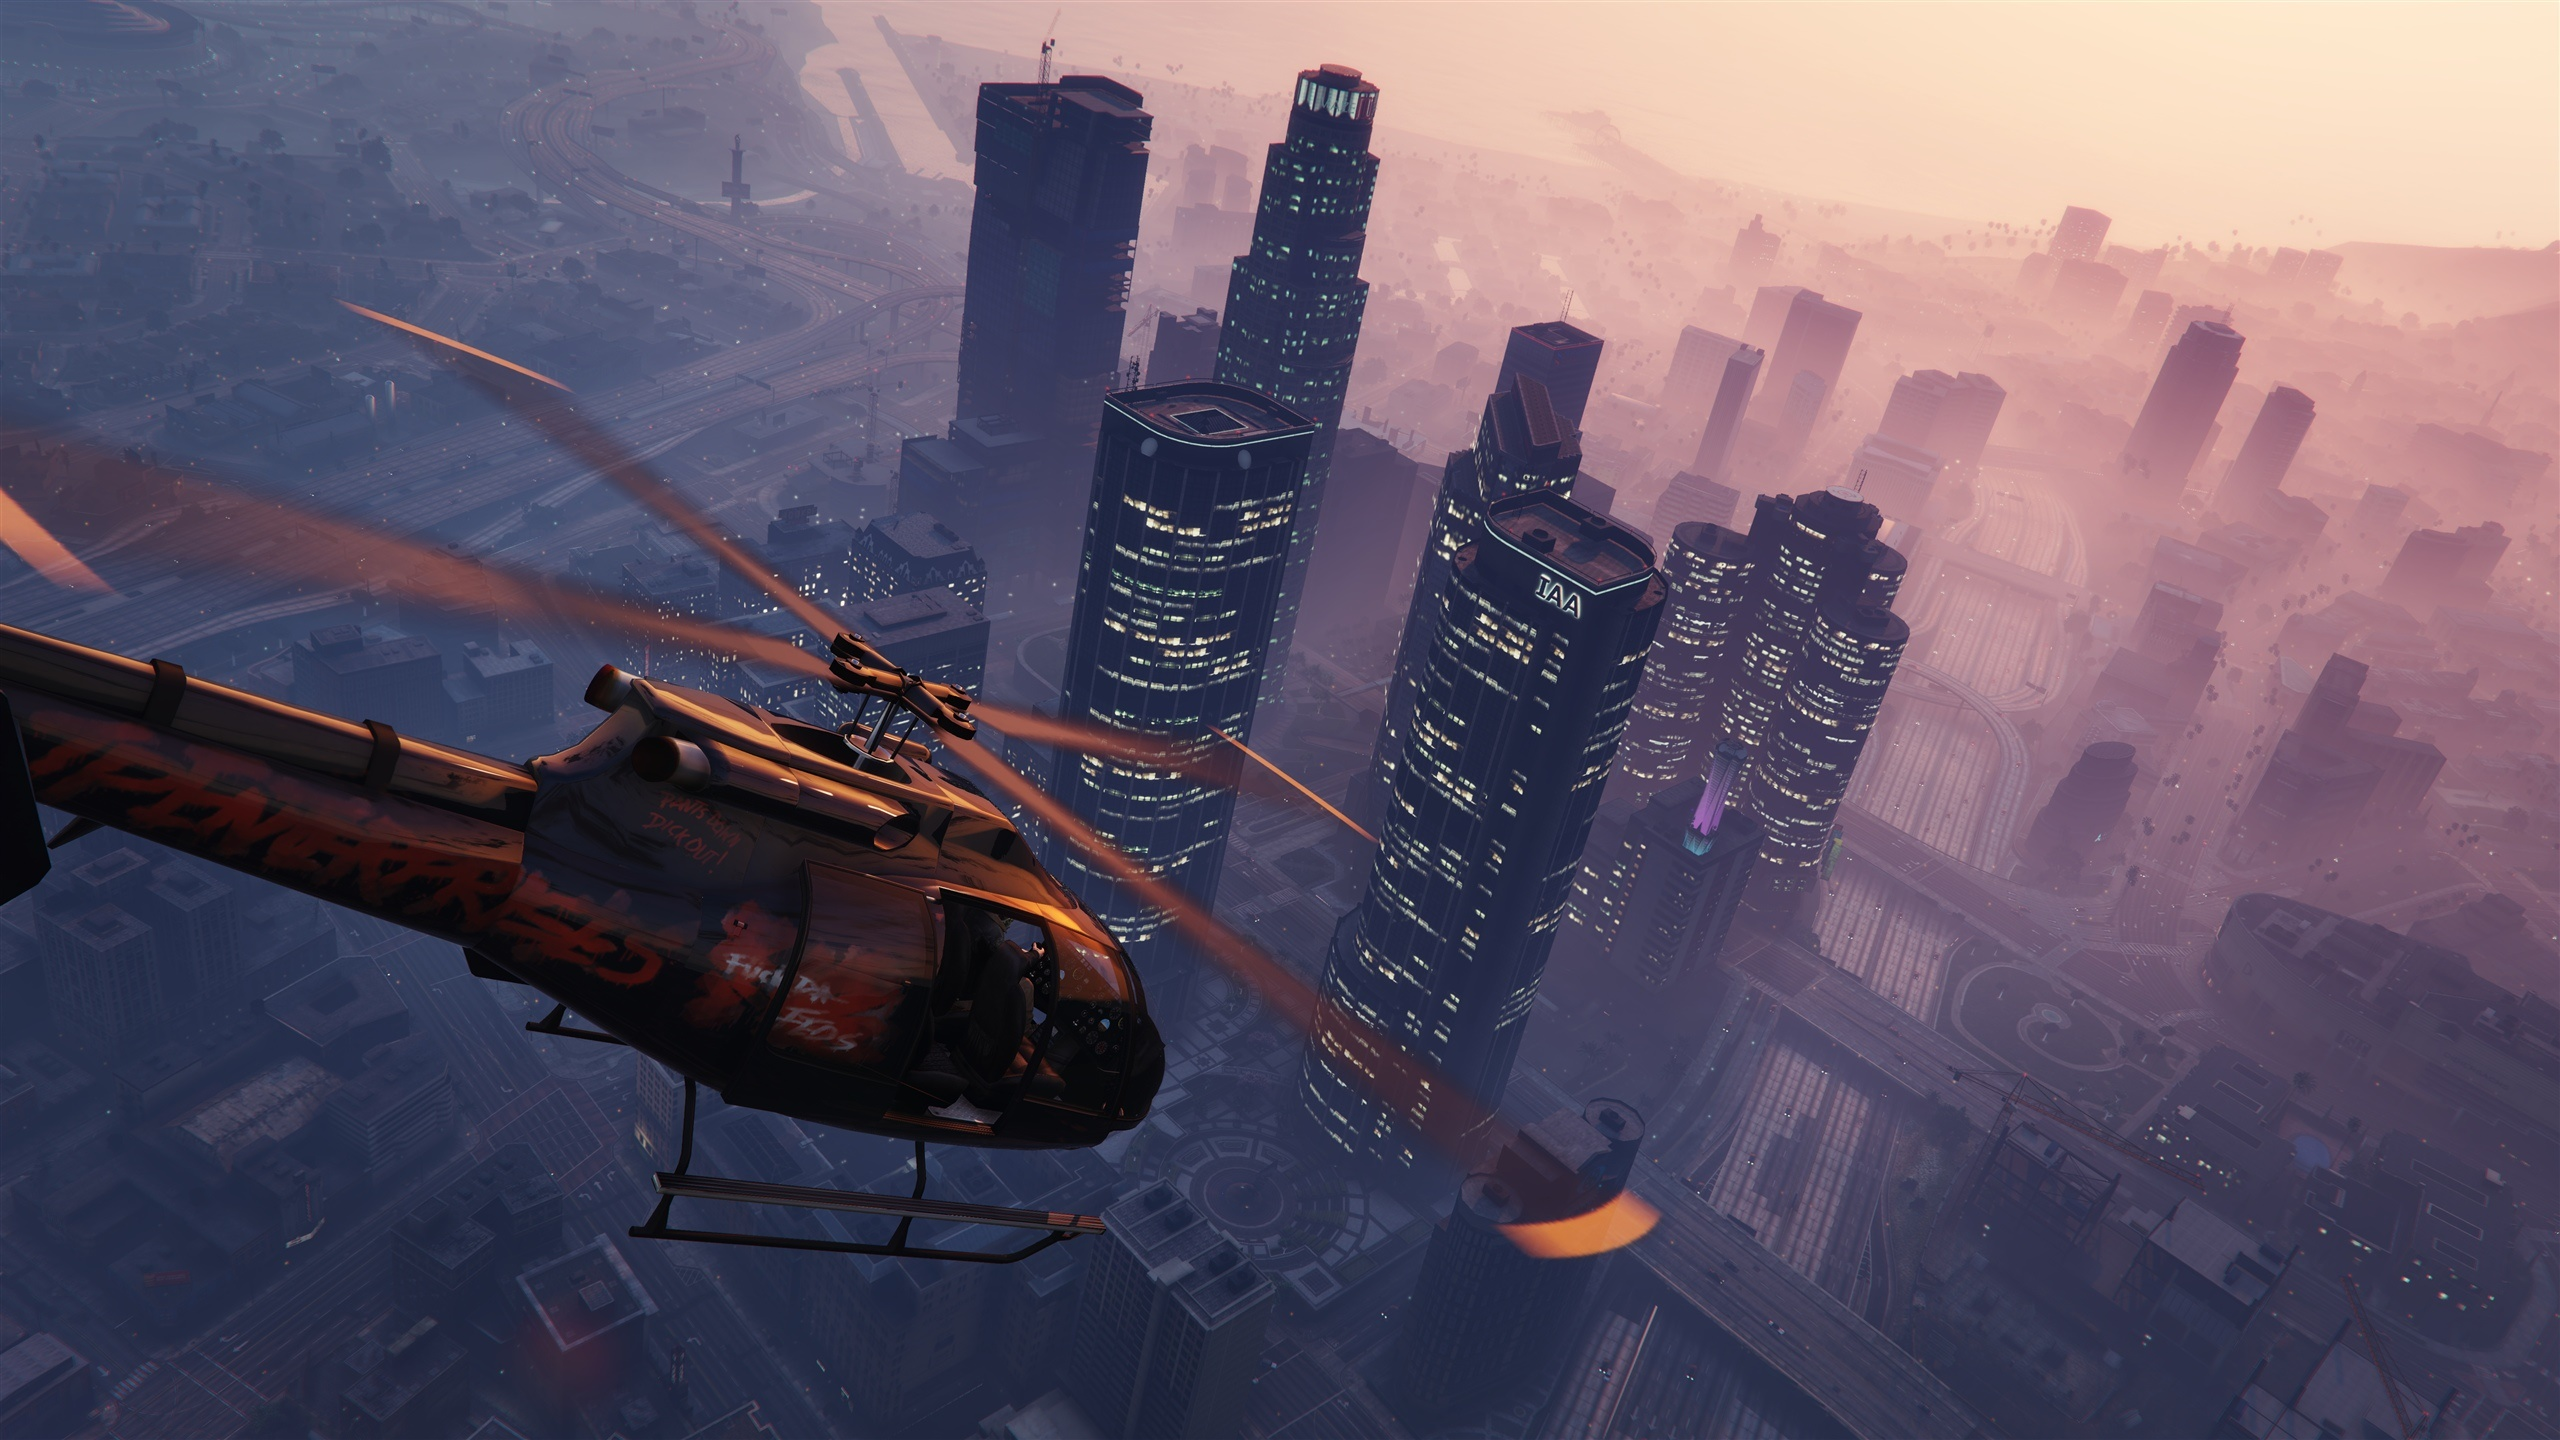 helicopter gta 5 with Grand Theft Auto V Gta 5 Pc Game Helicopter 2560x1440 Wallpaper on 1100 6427723 together with Grand Theft Auto 5 Gta V Xbox 360 Cheat Sheet furthermore Watch besides Lester Crest also Car Controls.